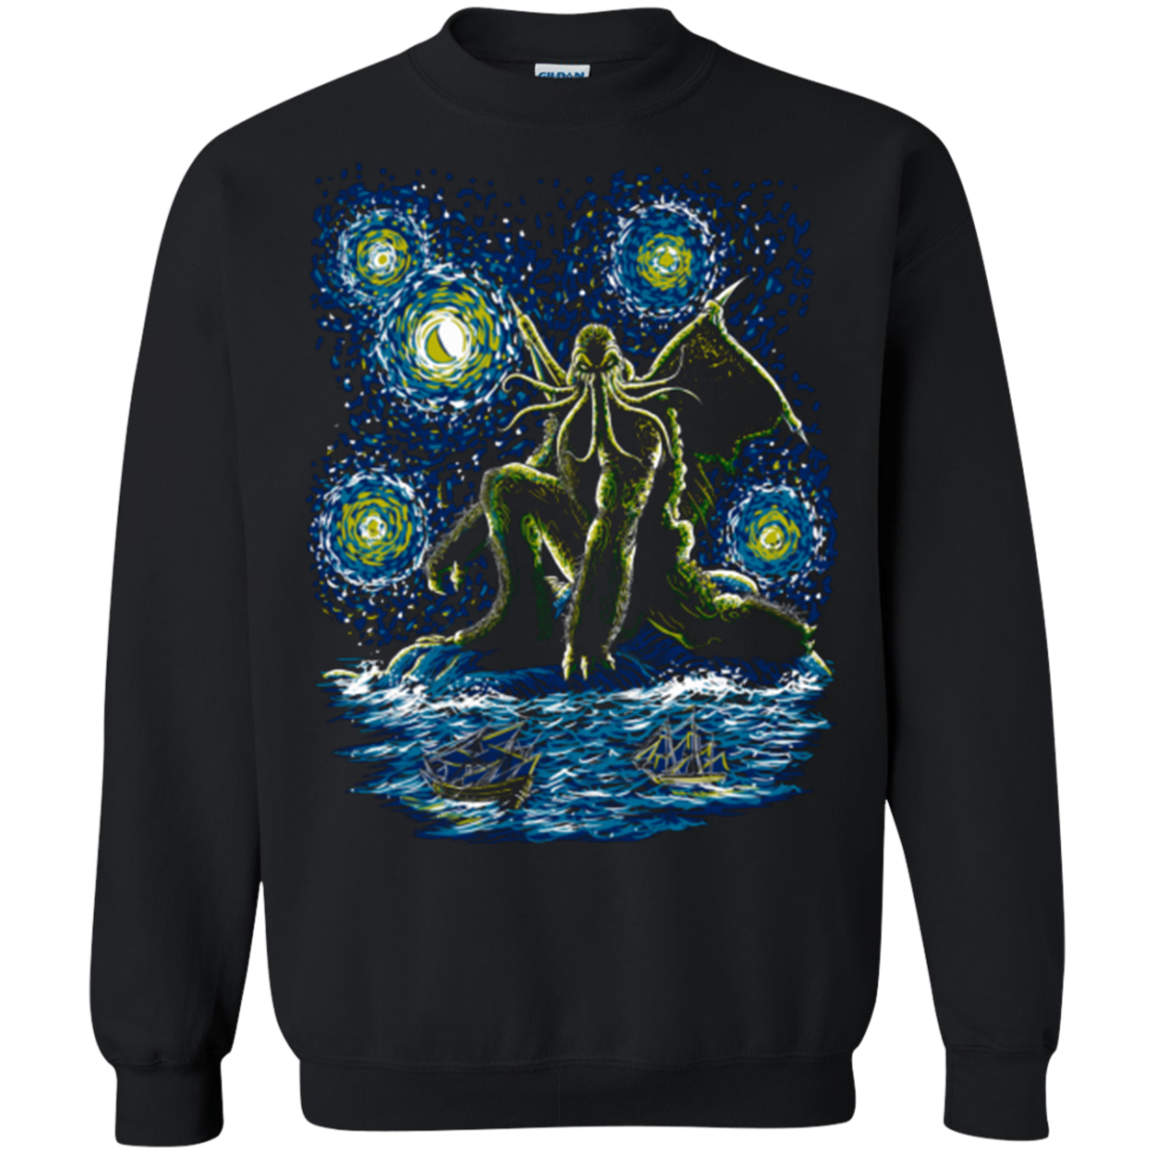 Night of Cthulhu Crewneck Sweatshirt